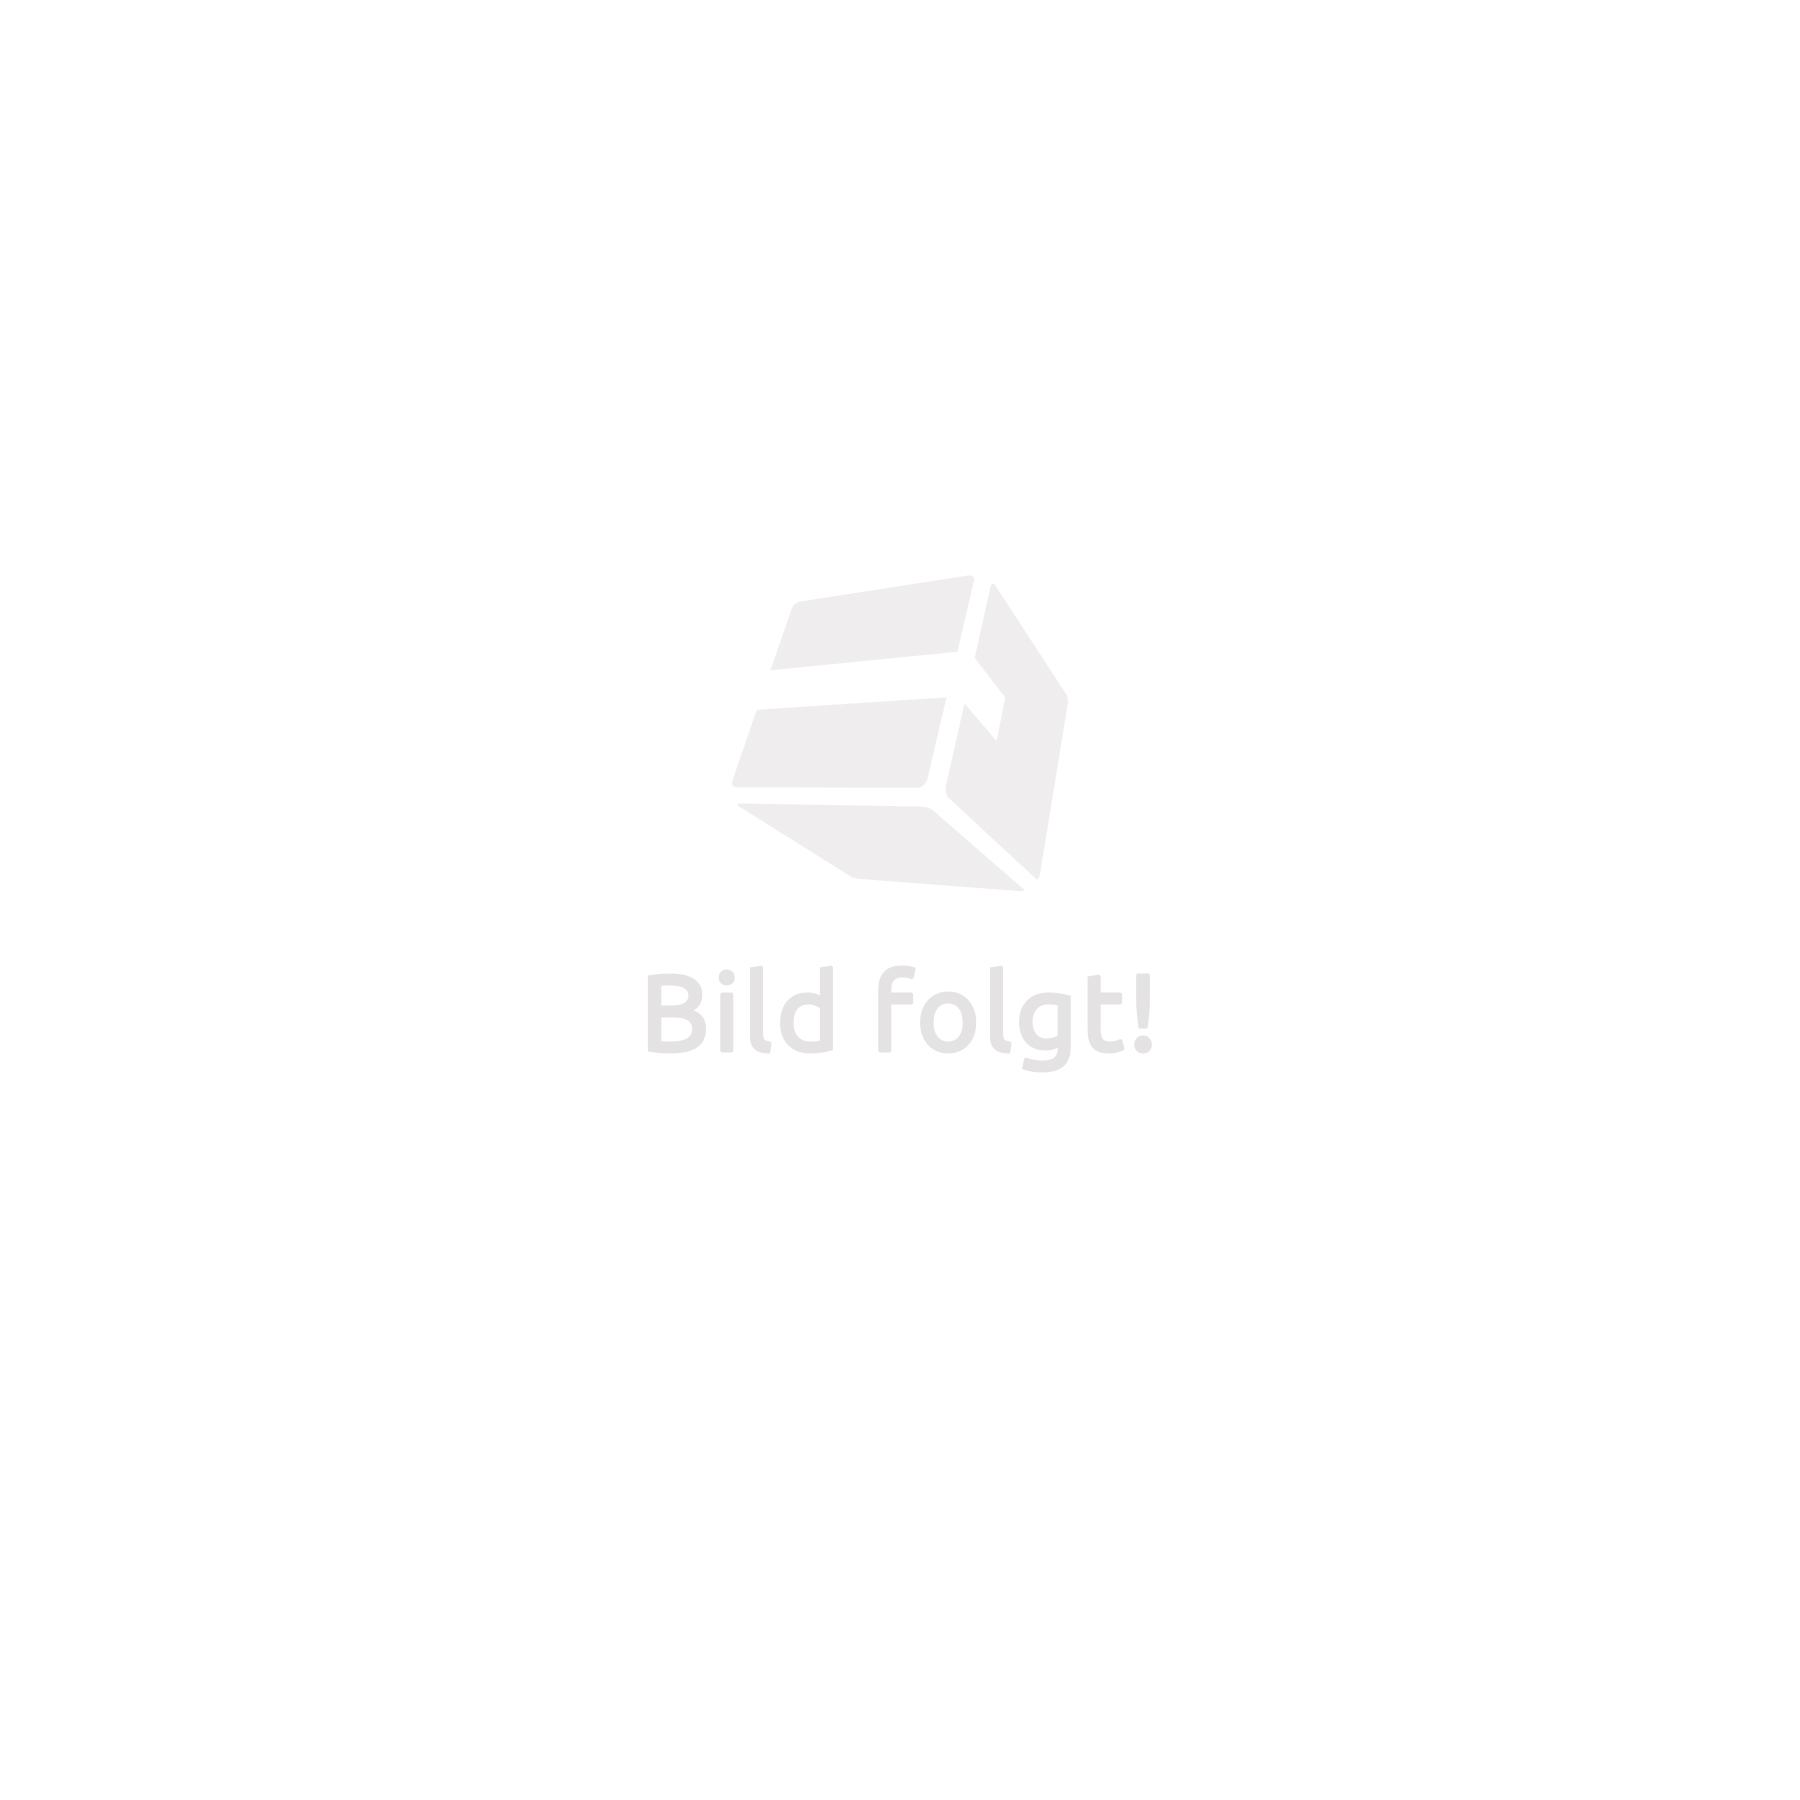 coiffeuse meuble table de maquillage tabouret commode avec miroir blanc. Black Bedroom Furniture Sets. Home Design Ideas